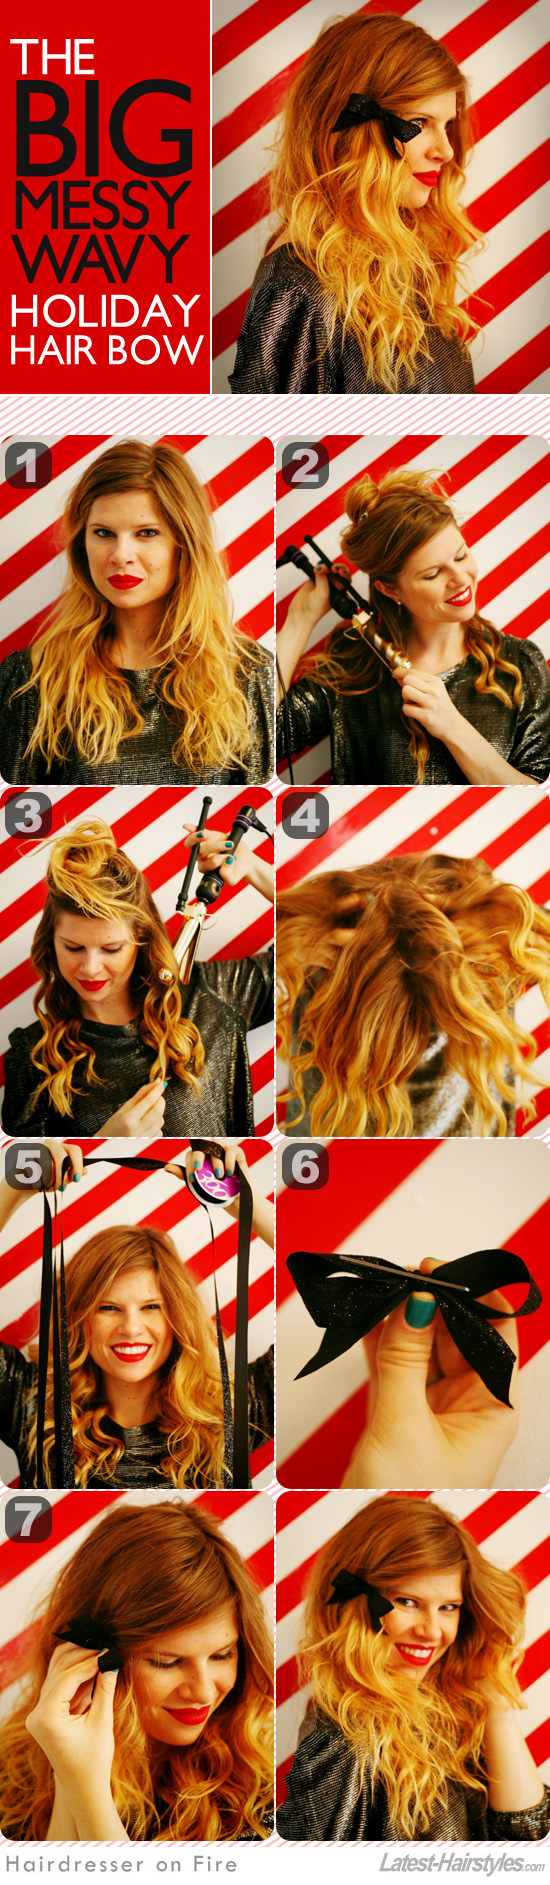 Big Messy Waves With a Bow!